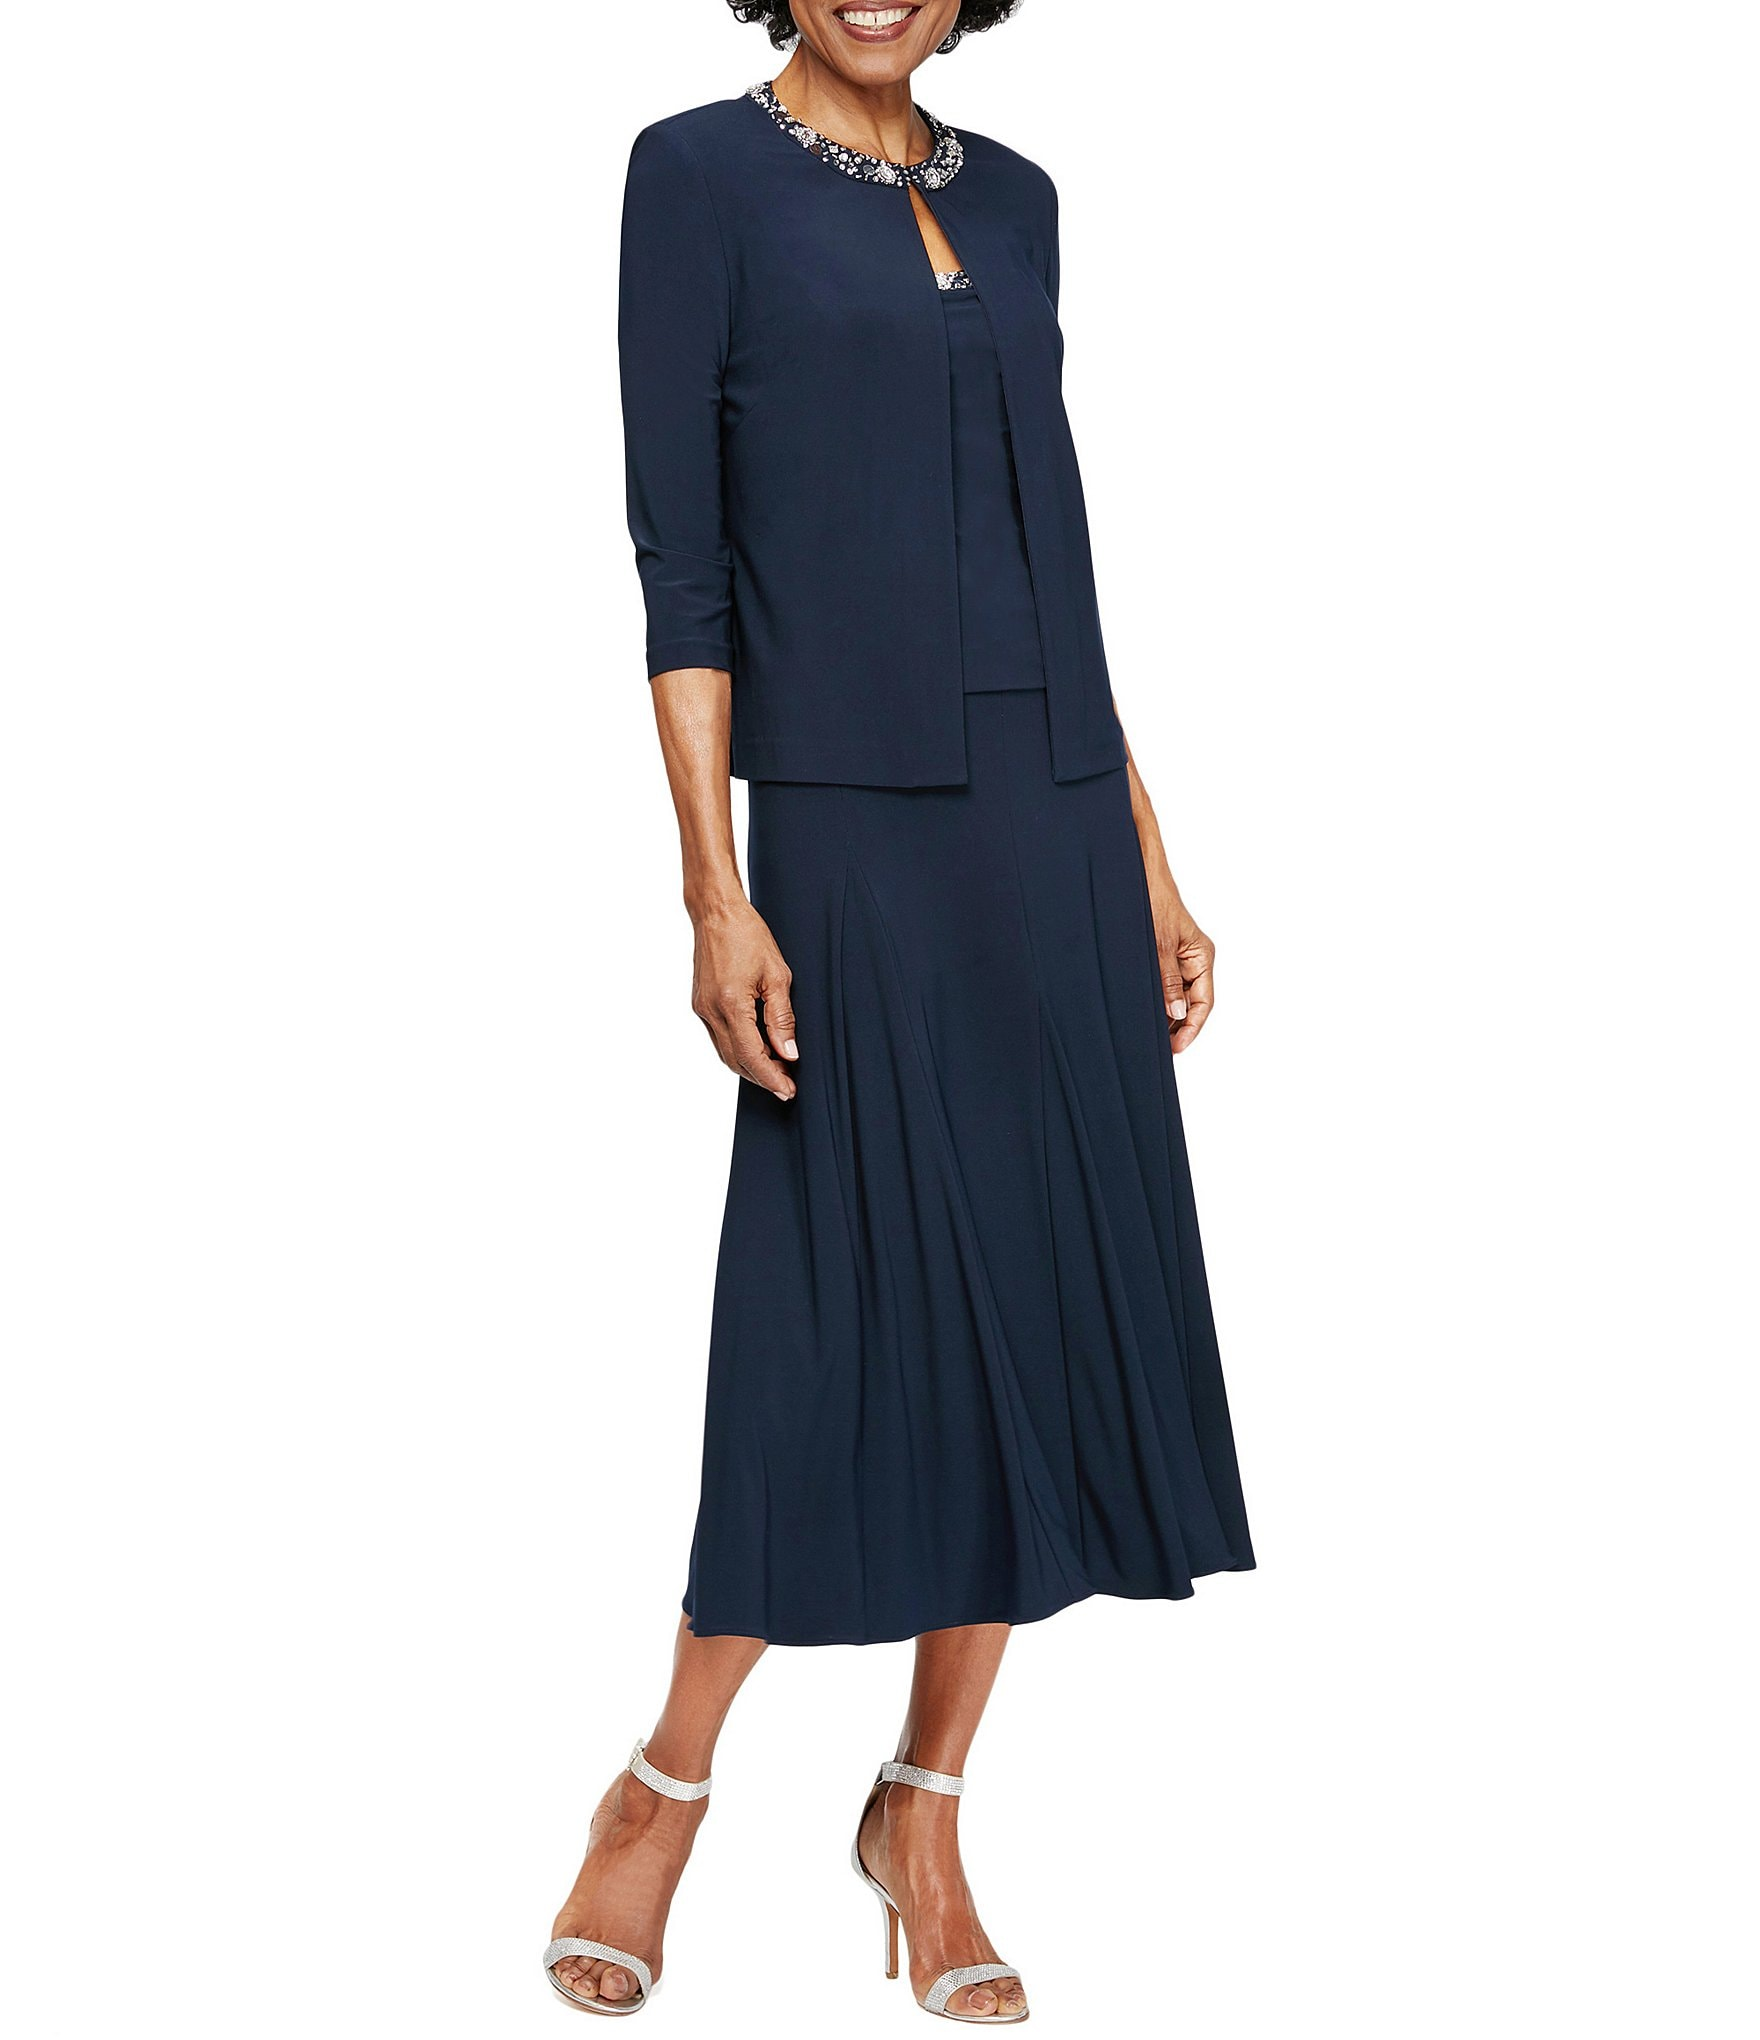 Dillard's Mother of the Bride Dresses Jacket